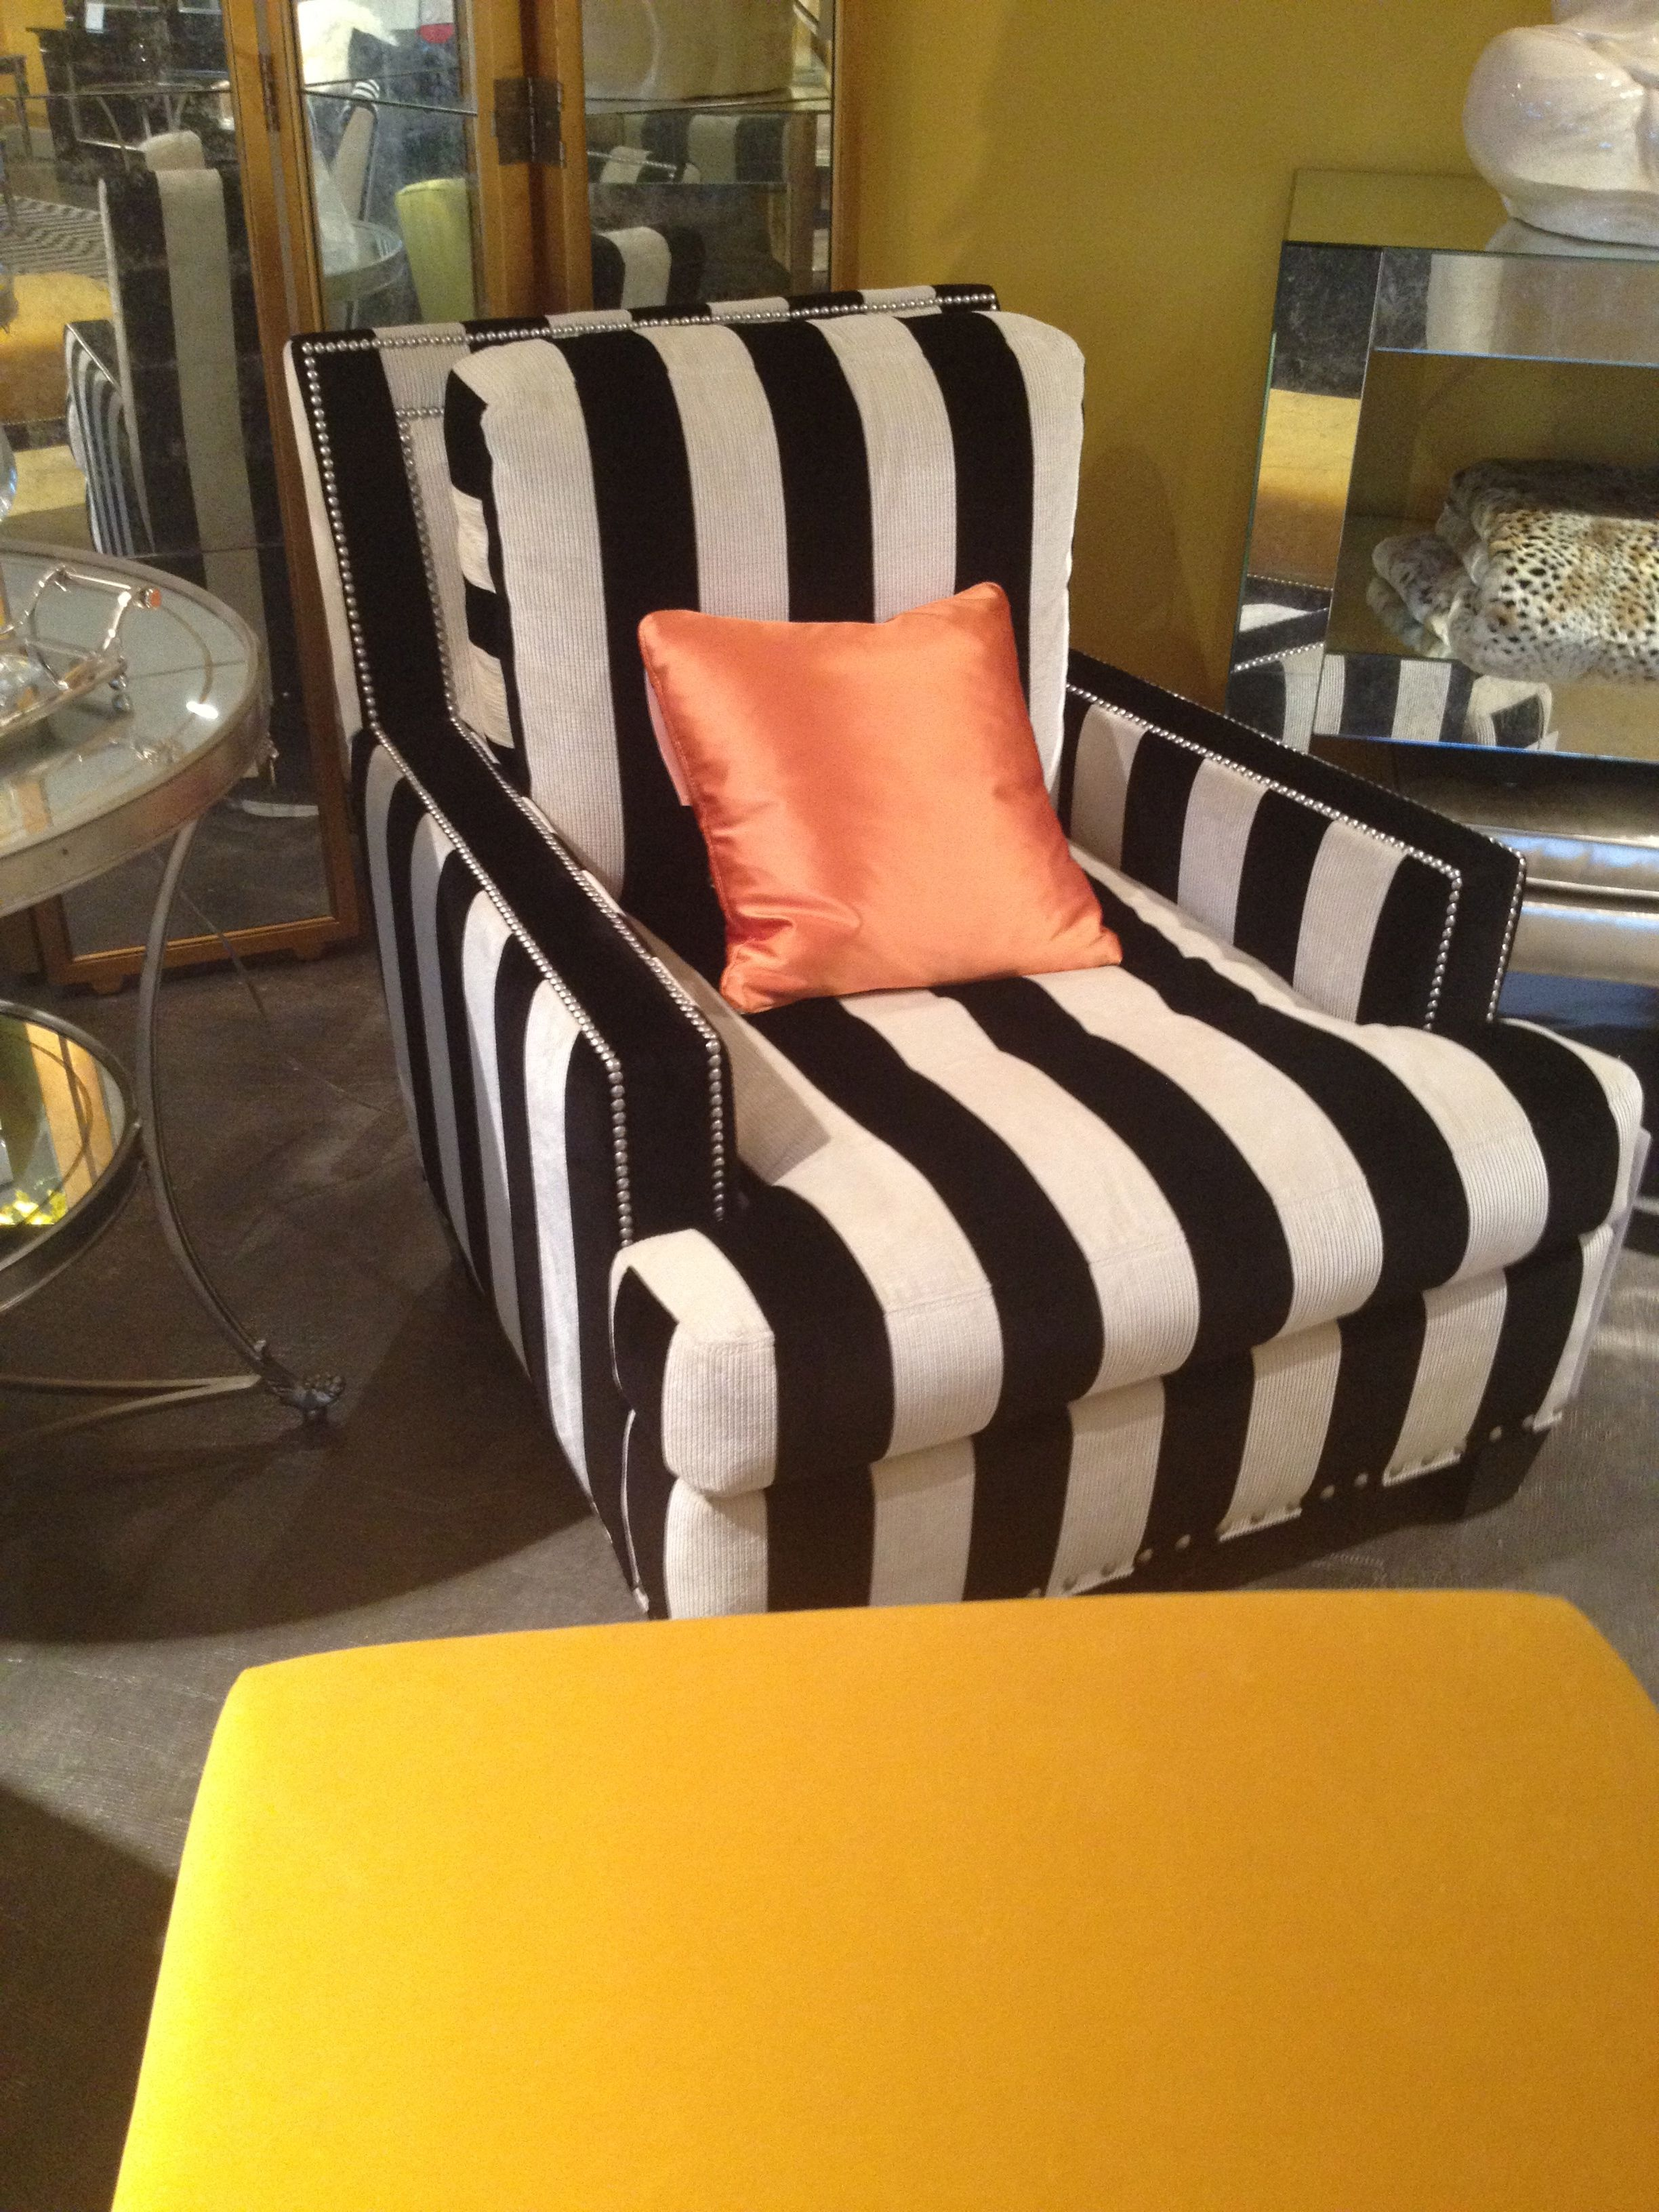 Charming High Point Market Spring 2012 Lillian August Black And White Stripe Chair  And Chic Yellow Ottoman...yes, To Both Please!